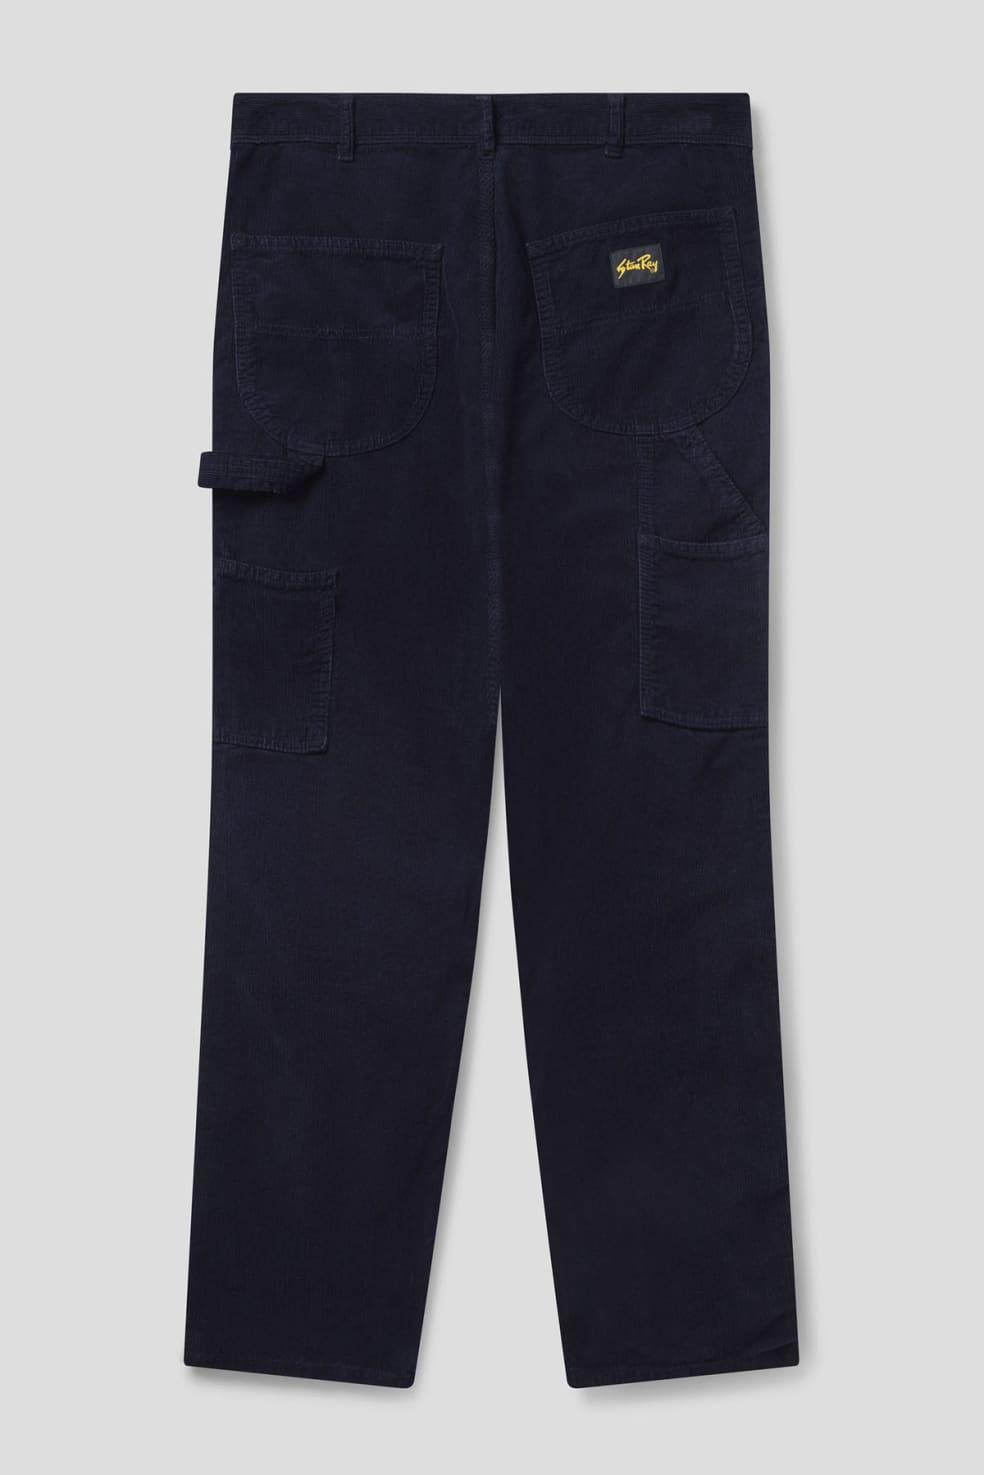 Stan Ray - 80's Painter Pant - Navy Cord | Trousers by Stan Ray 2